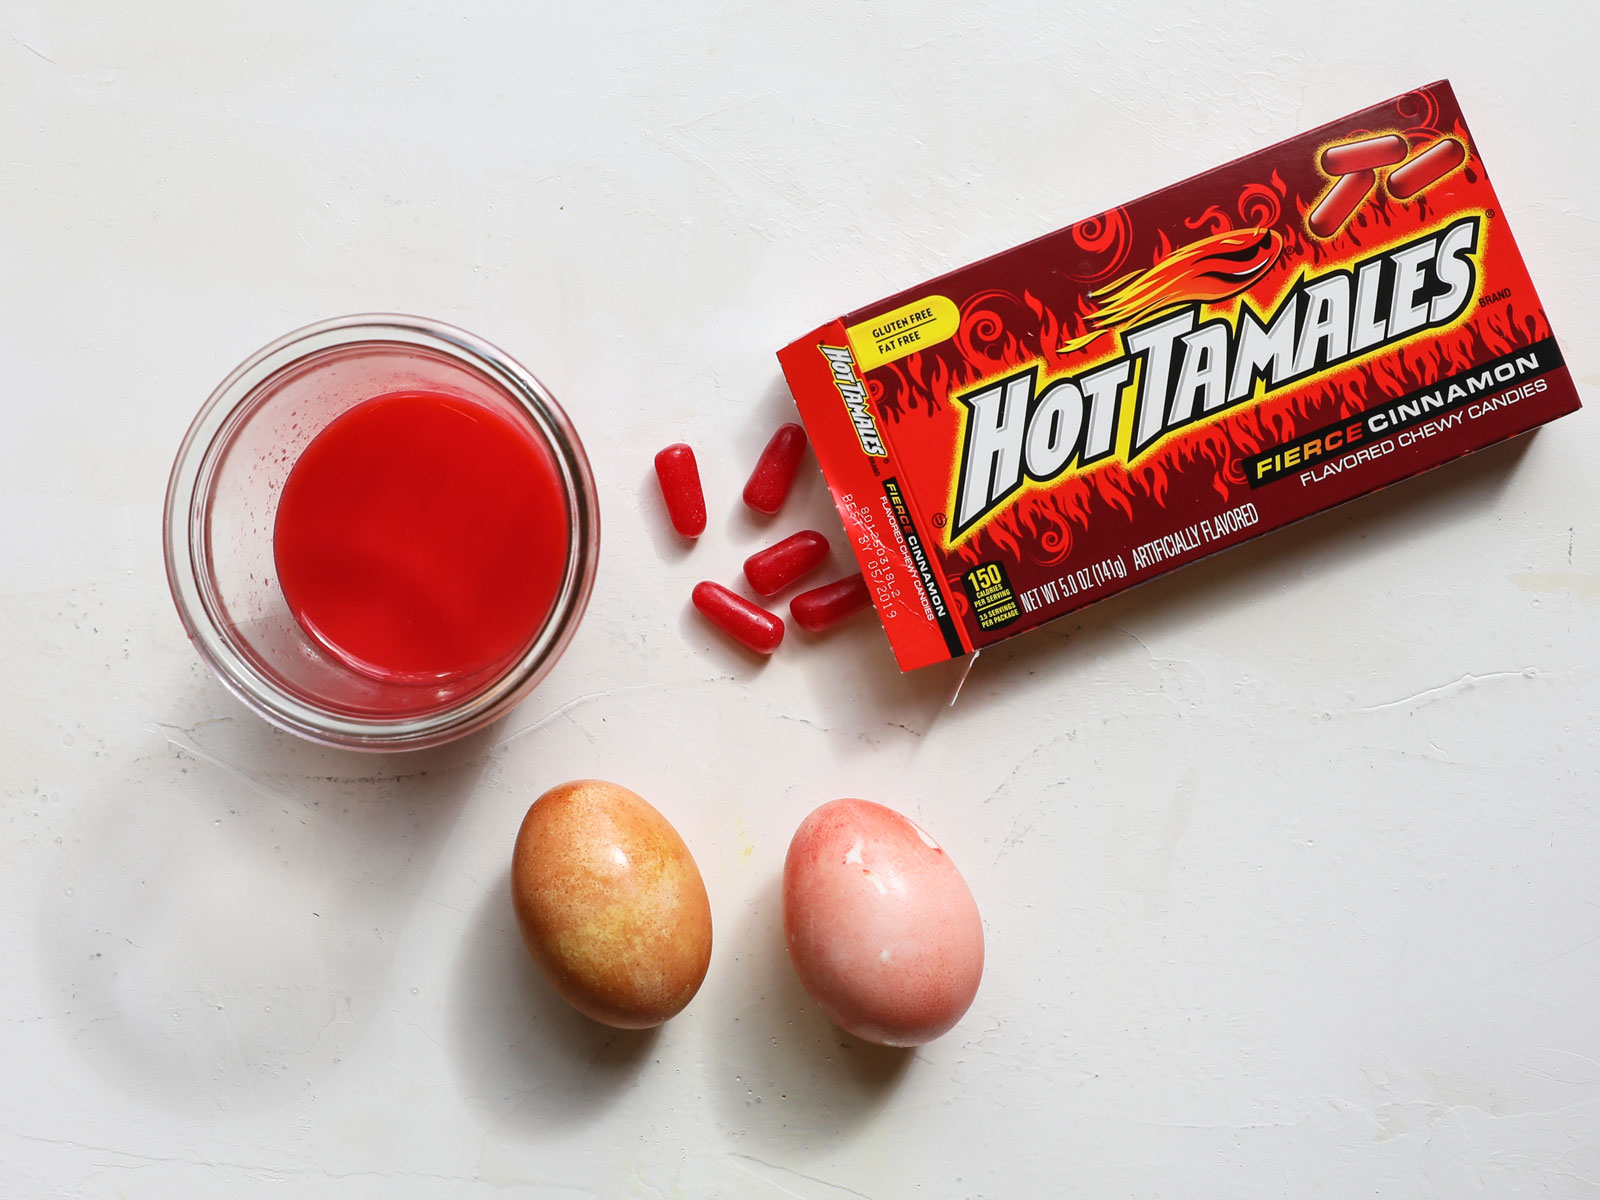 Hot Tamales Easter Egg Dye